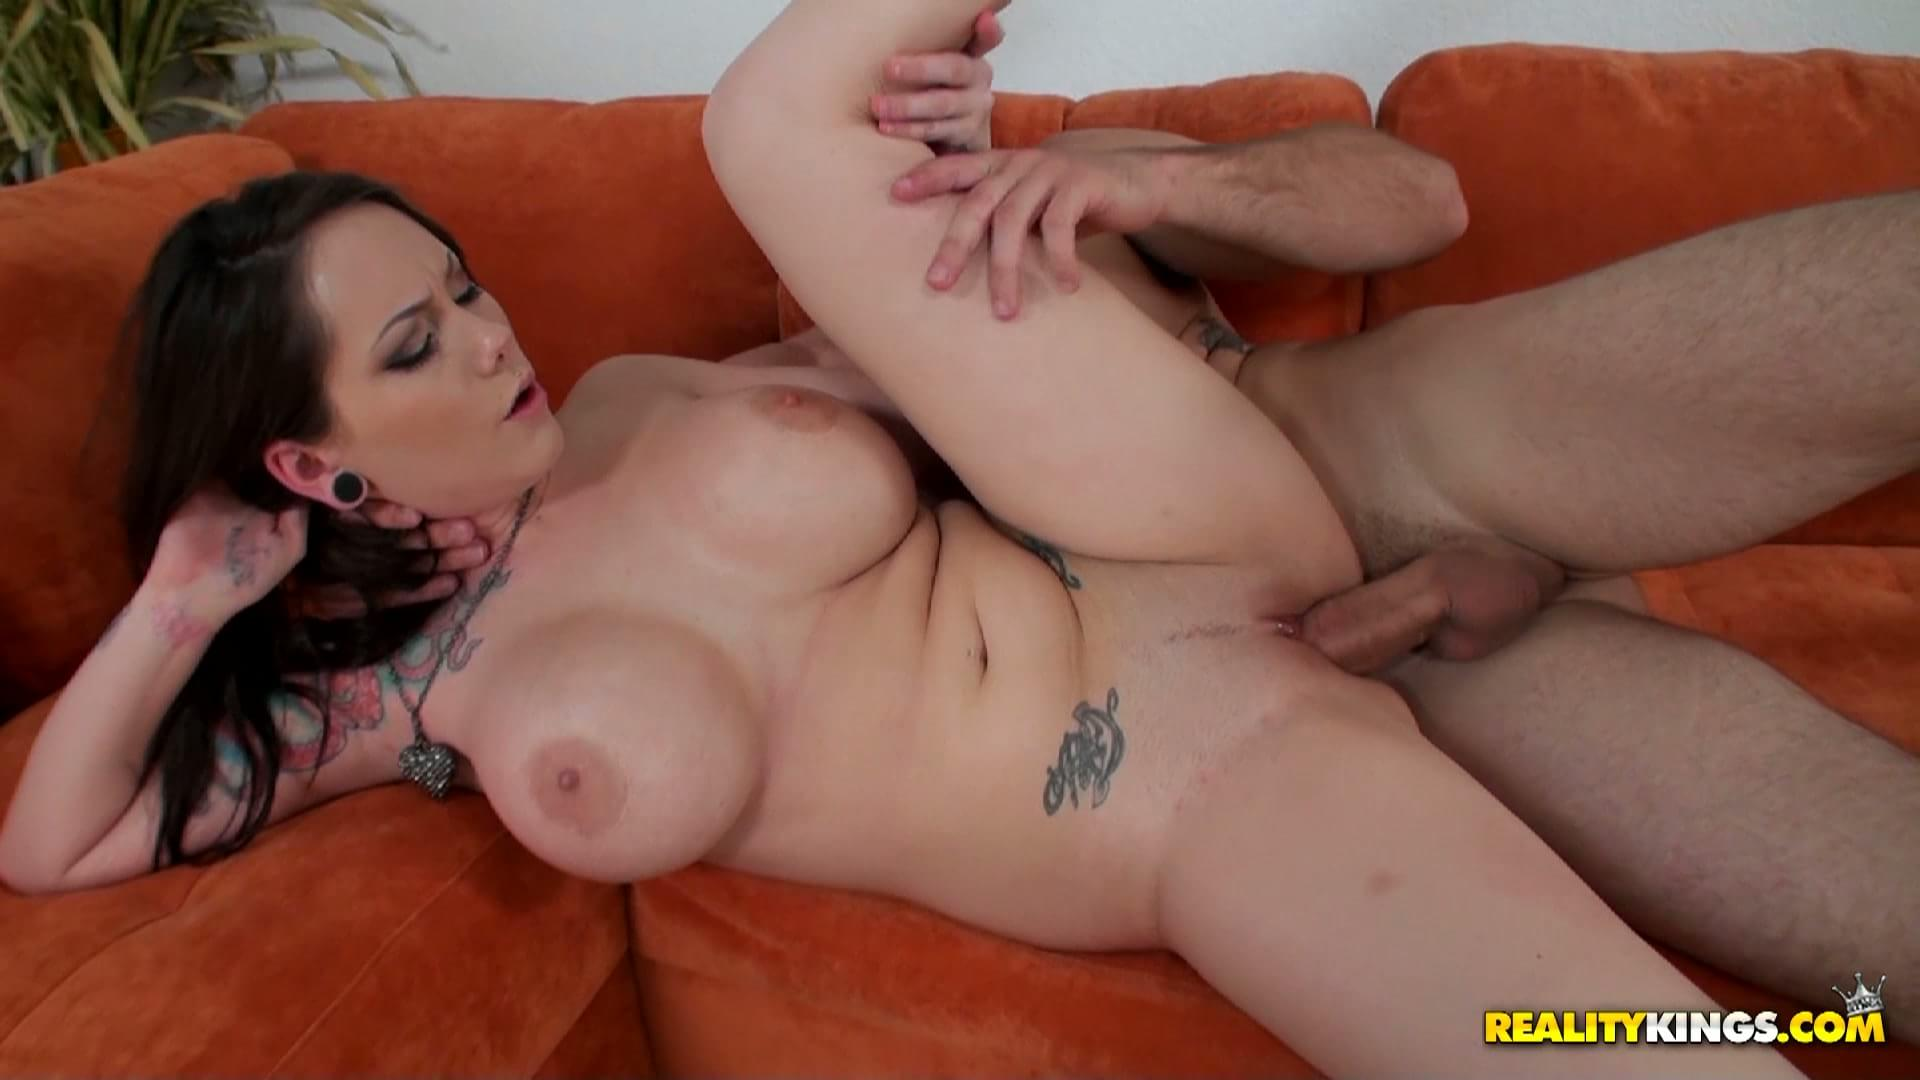 Busty coed ashton pierce gets her young pussy fucked hard 7